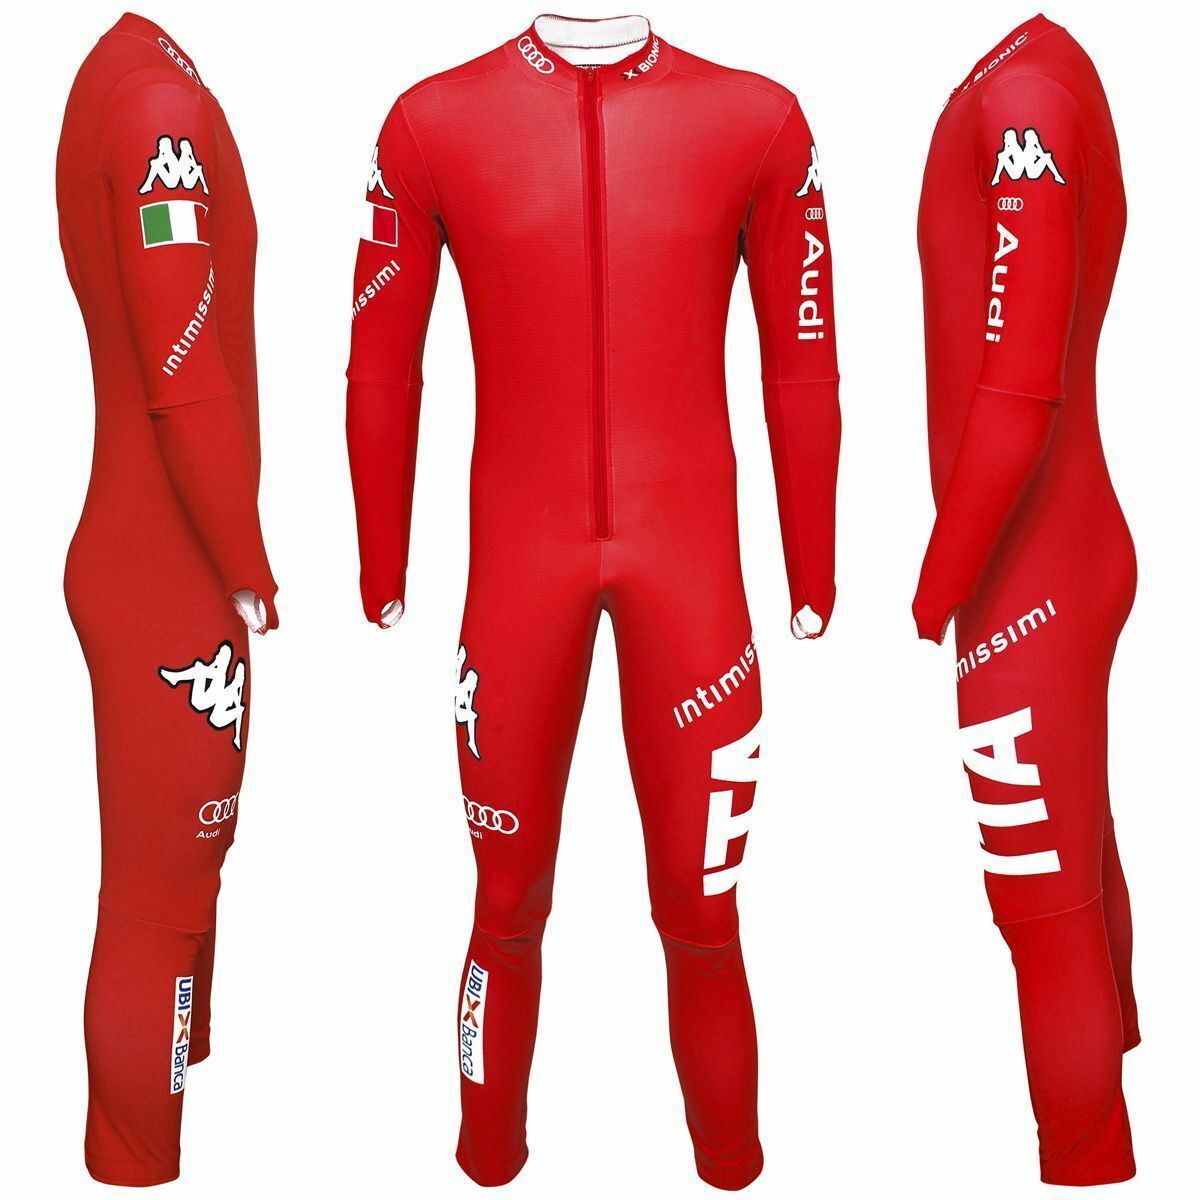 Kappa Ski Rennanzug Race Racing Speed Suit XL Rot Neu Italia NationalTeam SG DH